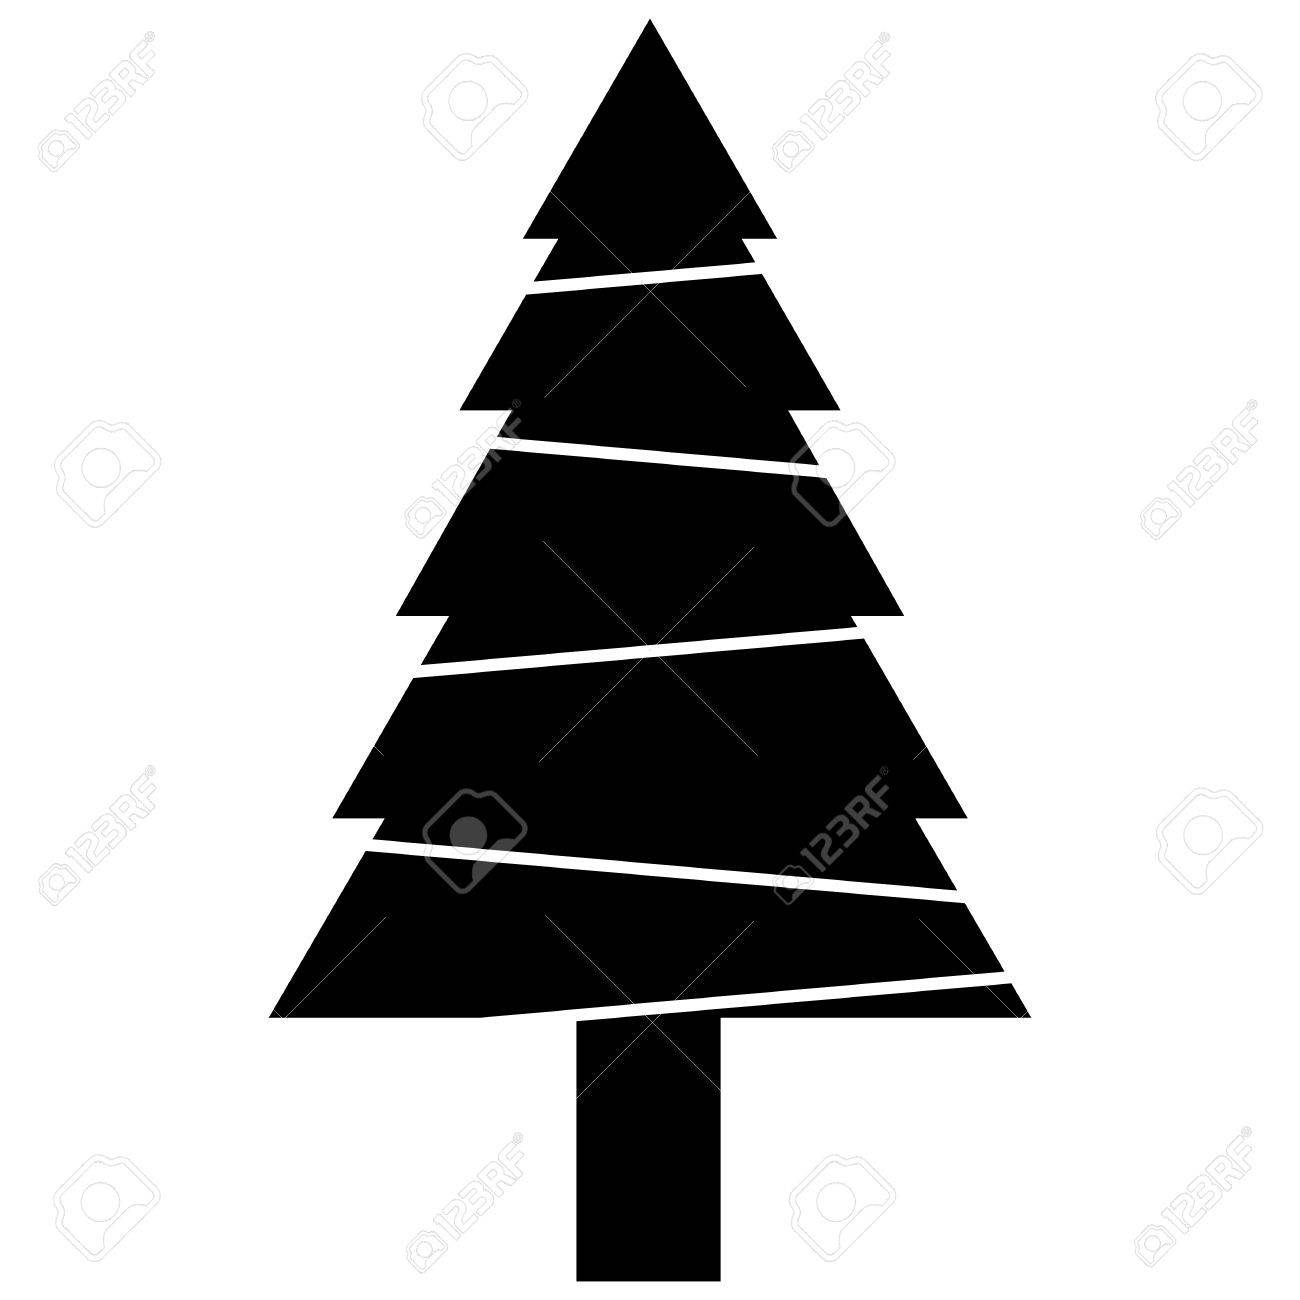 Christmas Tree Vector.Black Christmas Tree Vector